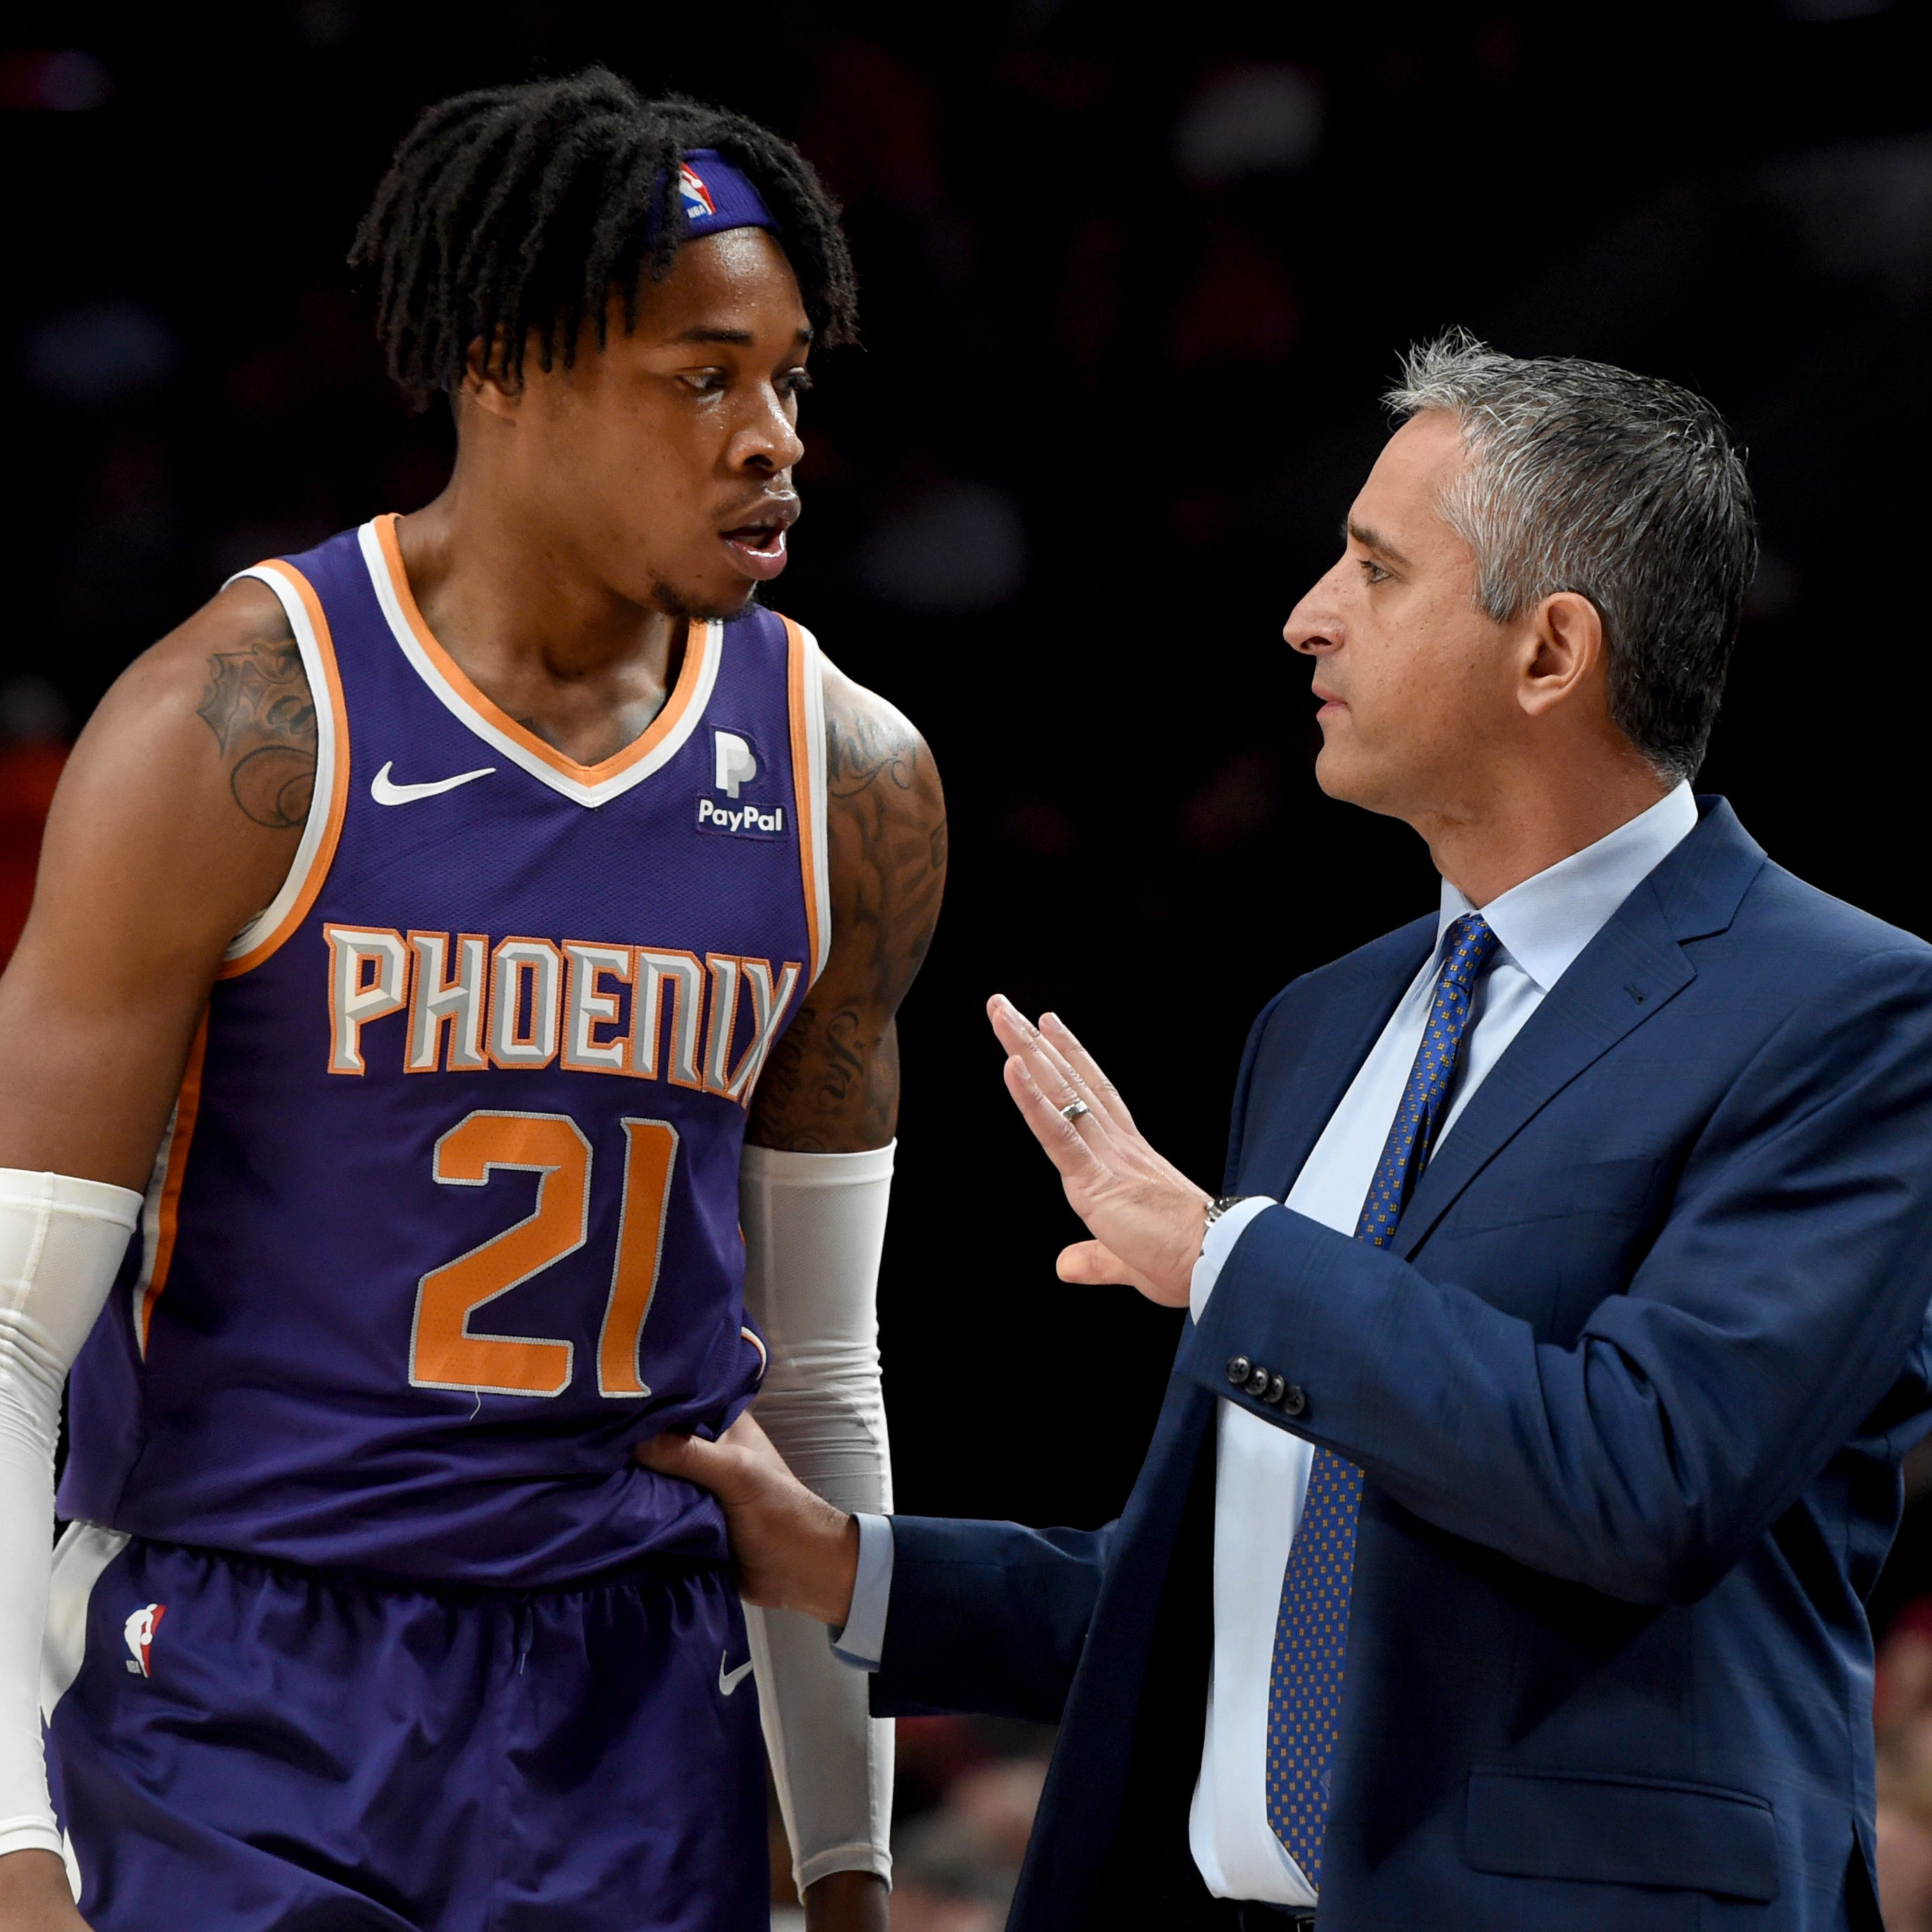 'Come on man': Charles Barkley bashes Phoenix Suns for having seven points in 1st quarter vs. Trail Blazers